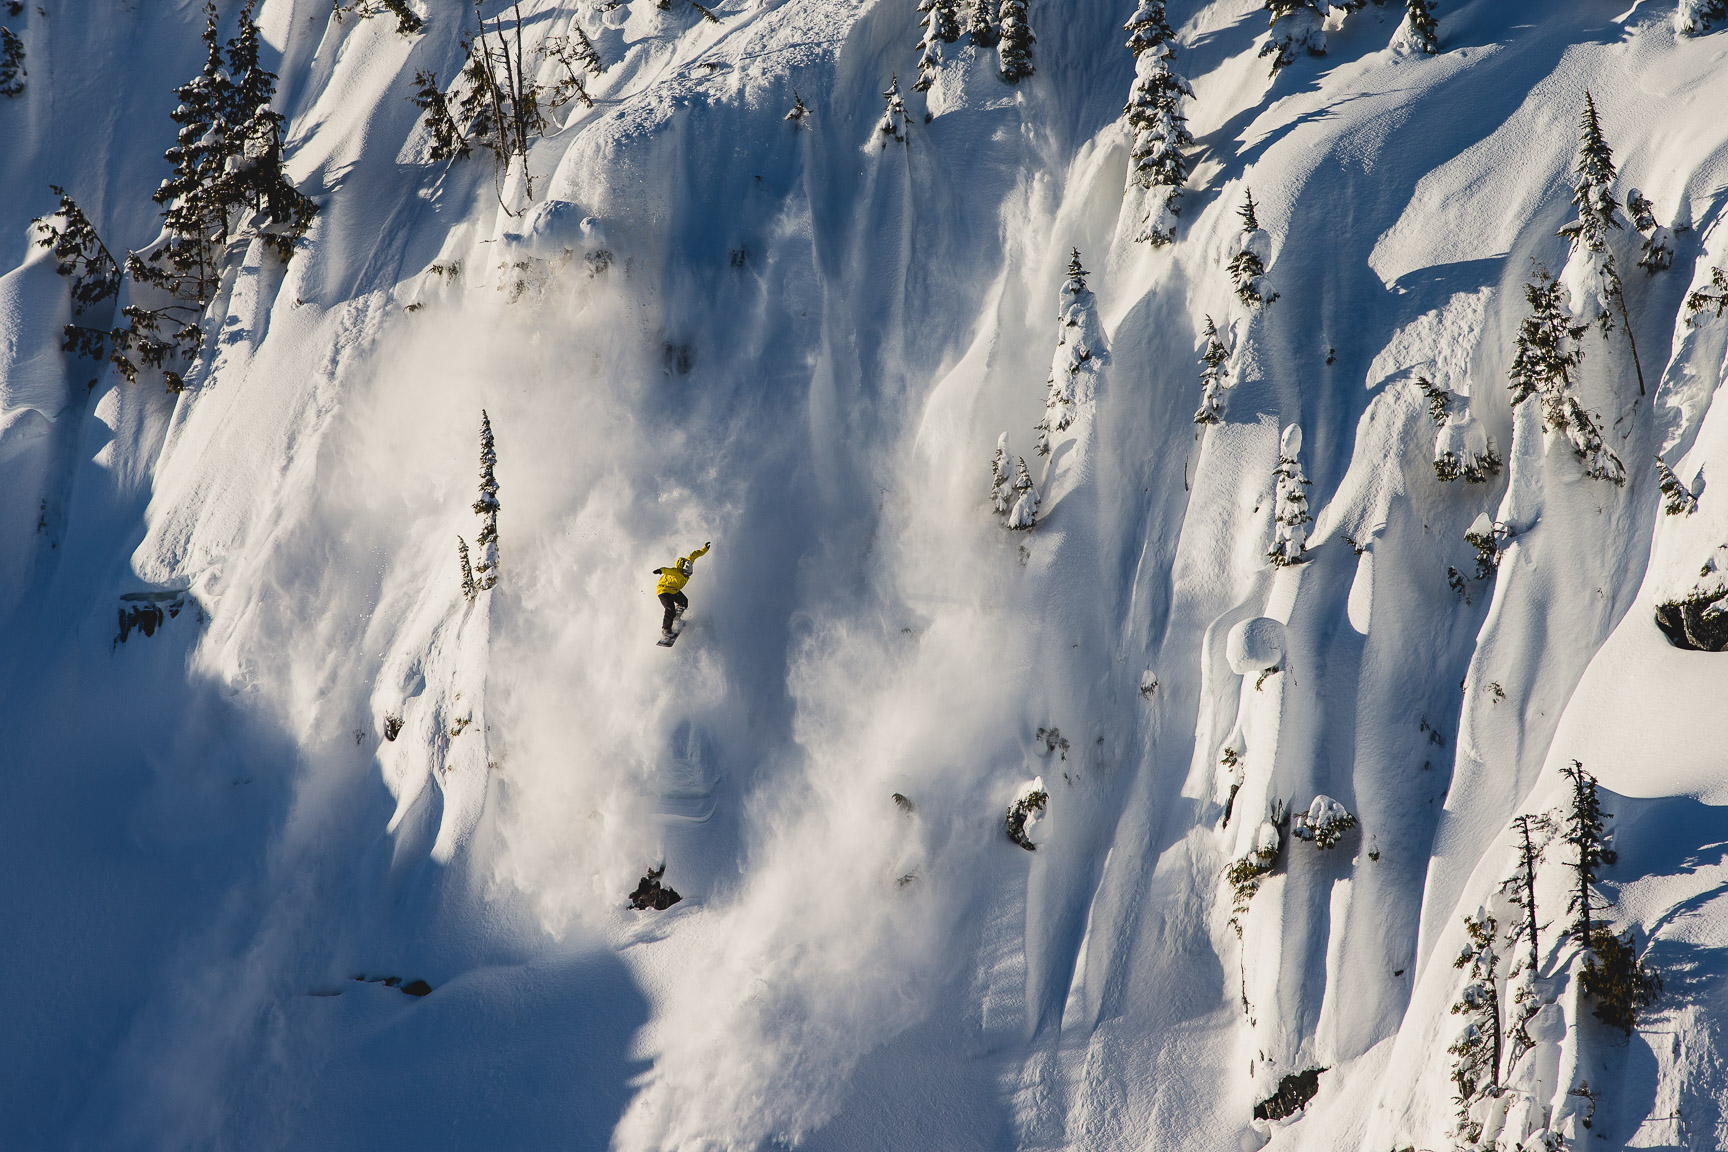 Mikey Rencz, Whistler, Canada